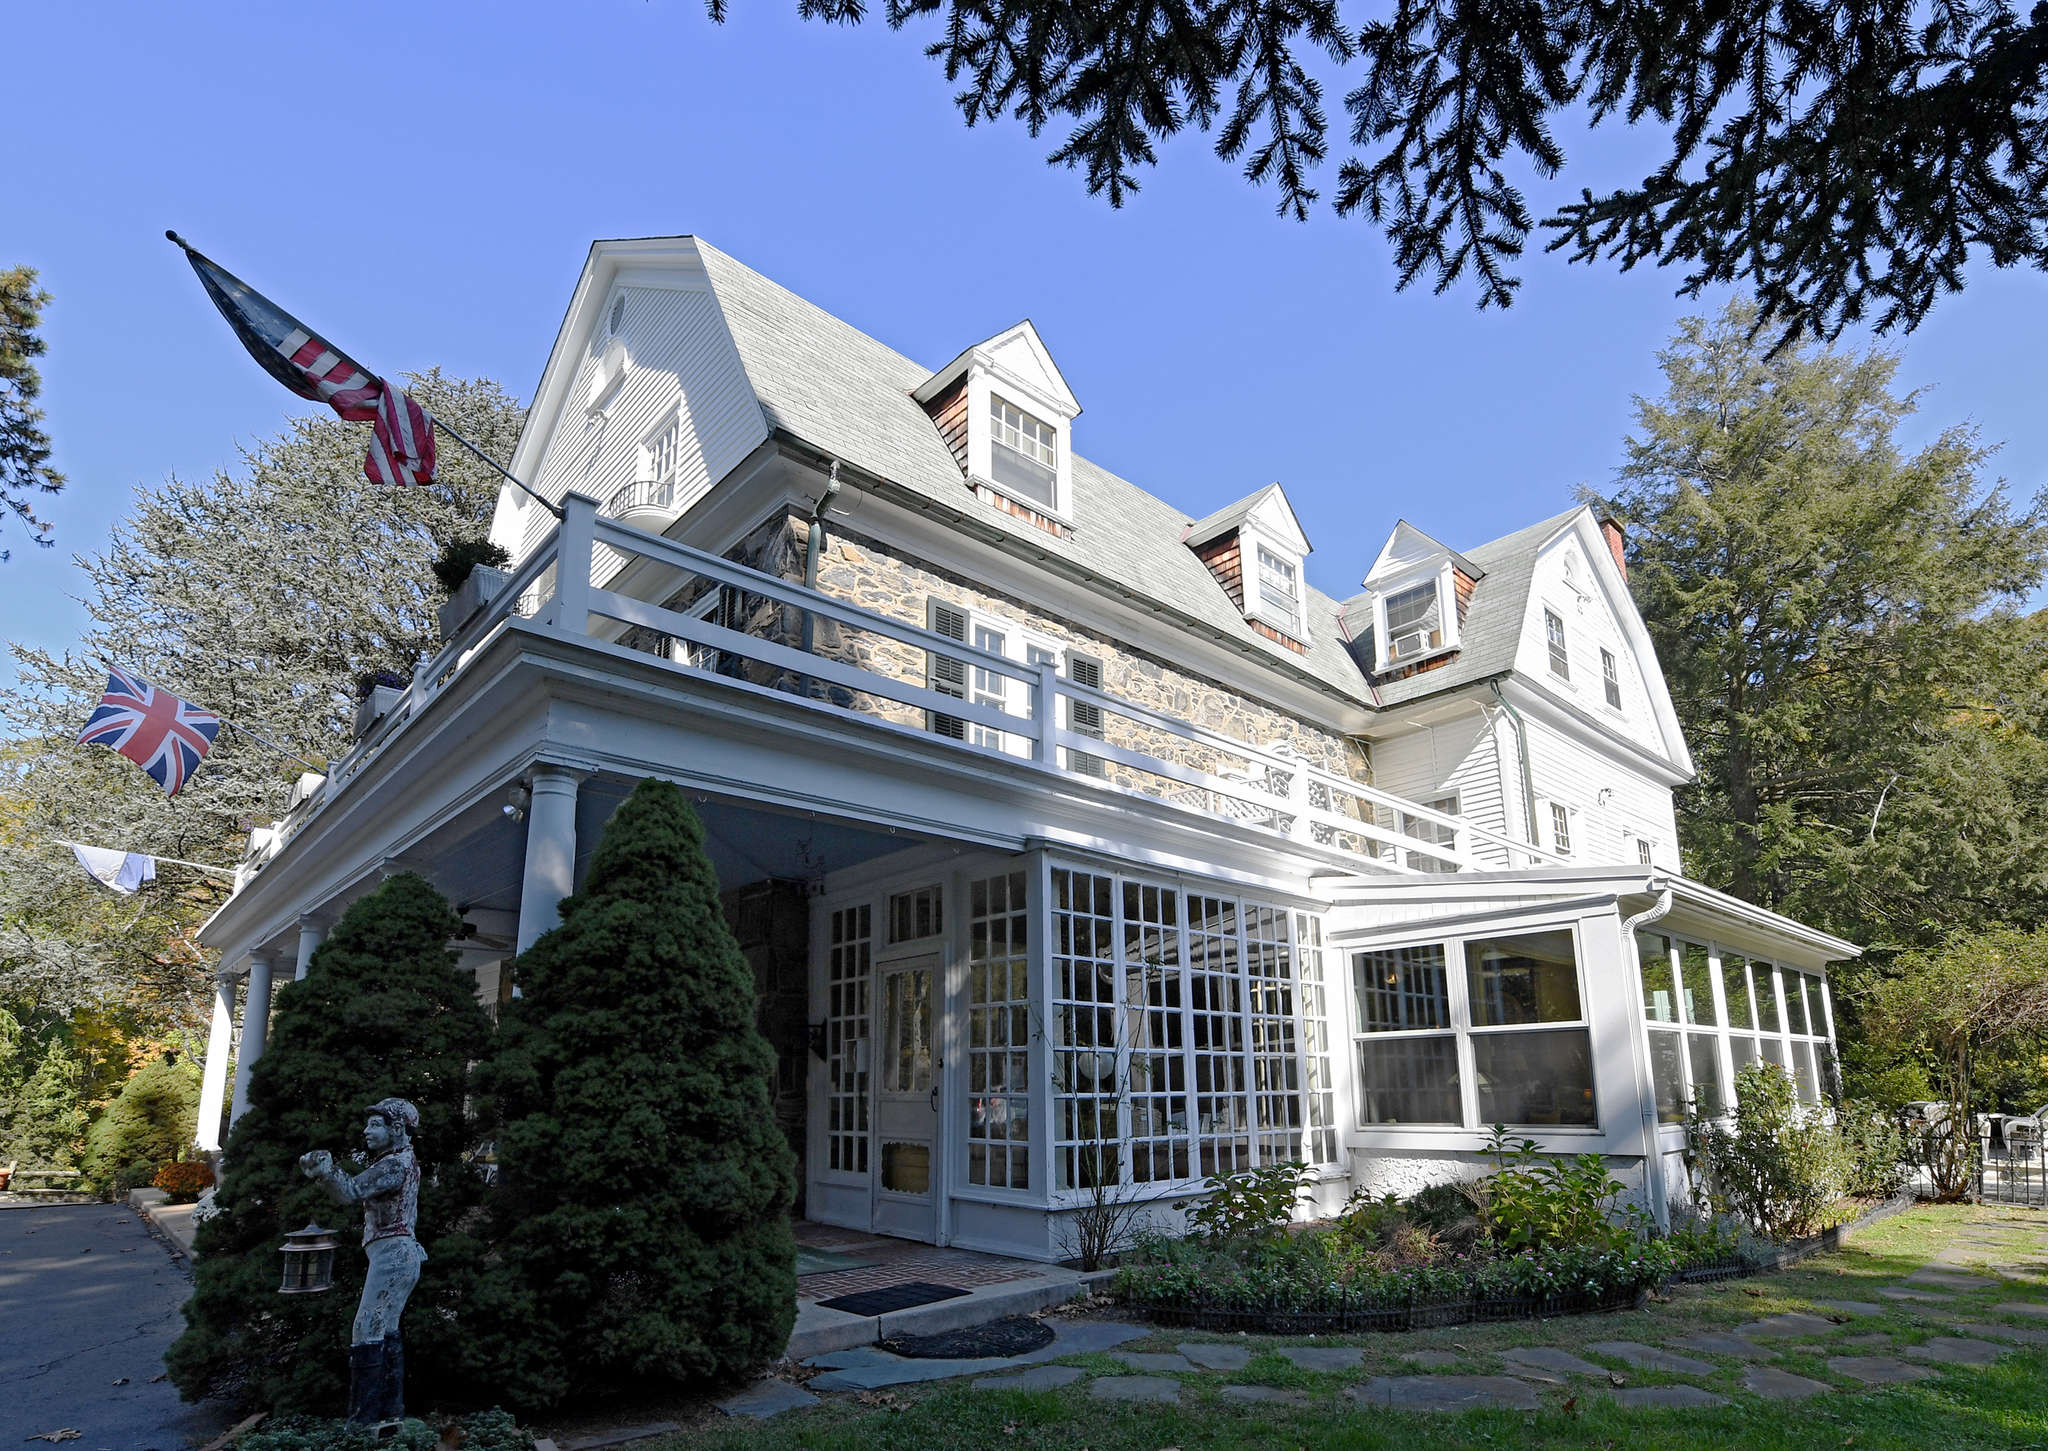 Hamanassett Bed & Breakfast on Indian Springs Drive is listed at $1.6 million.